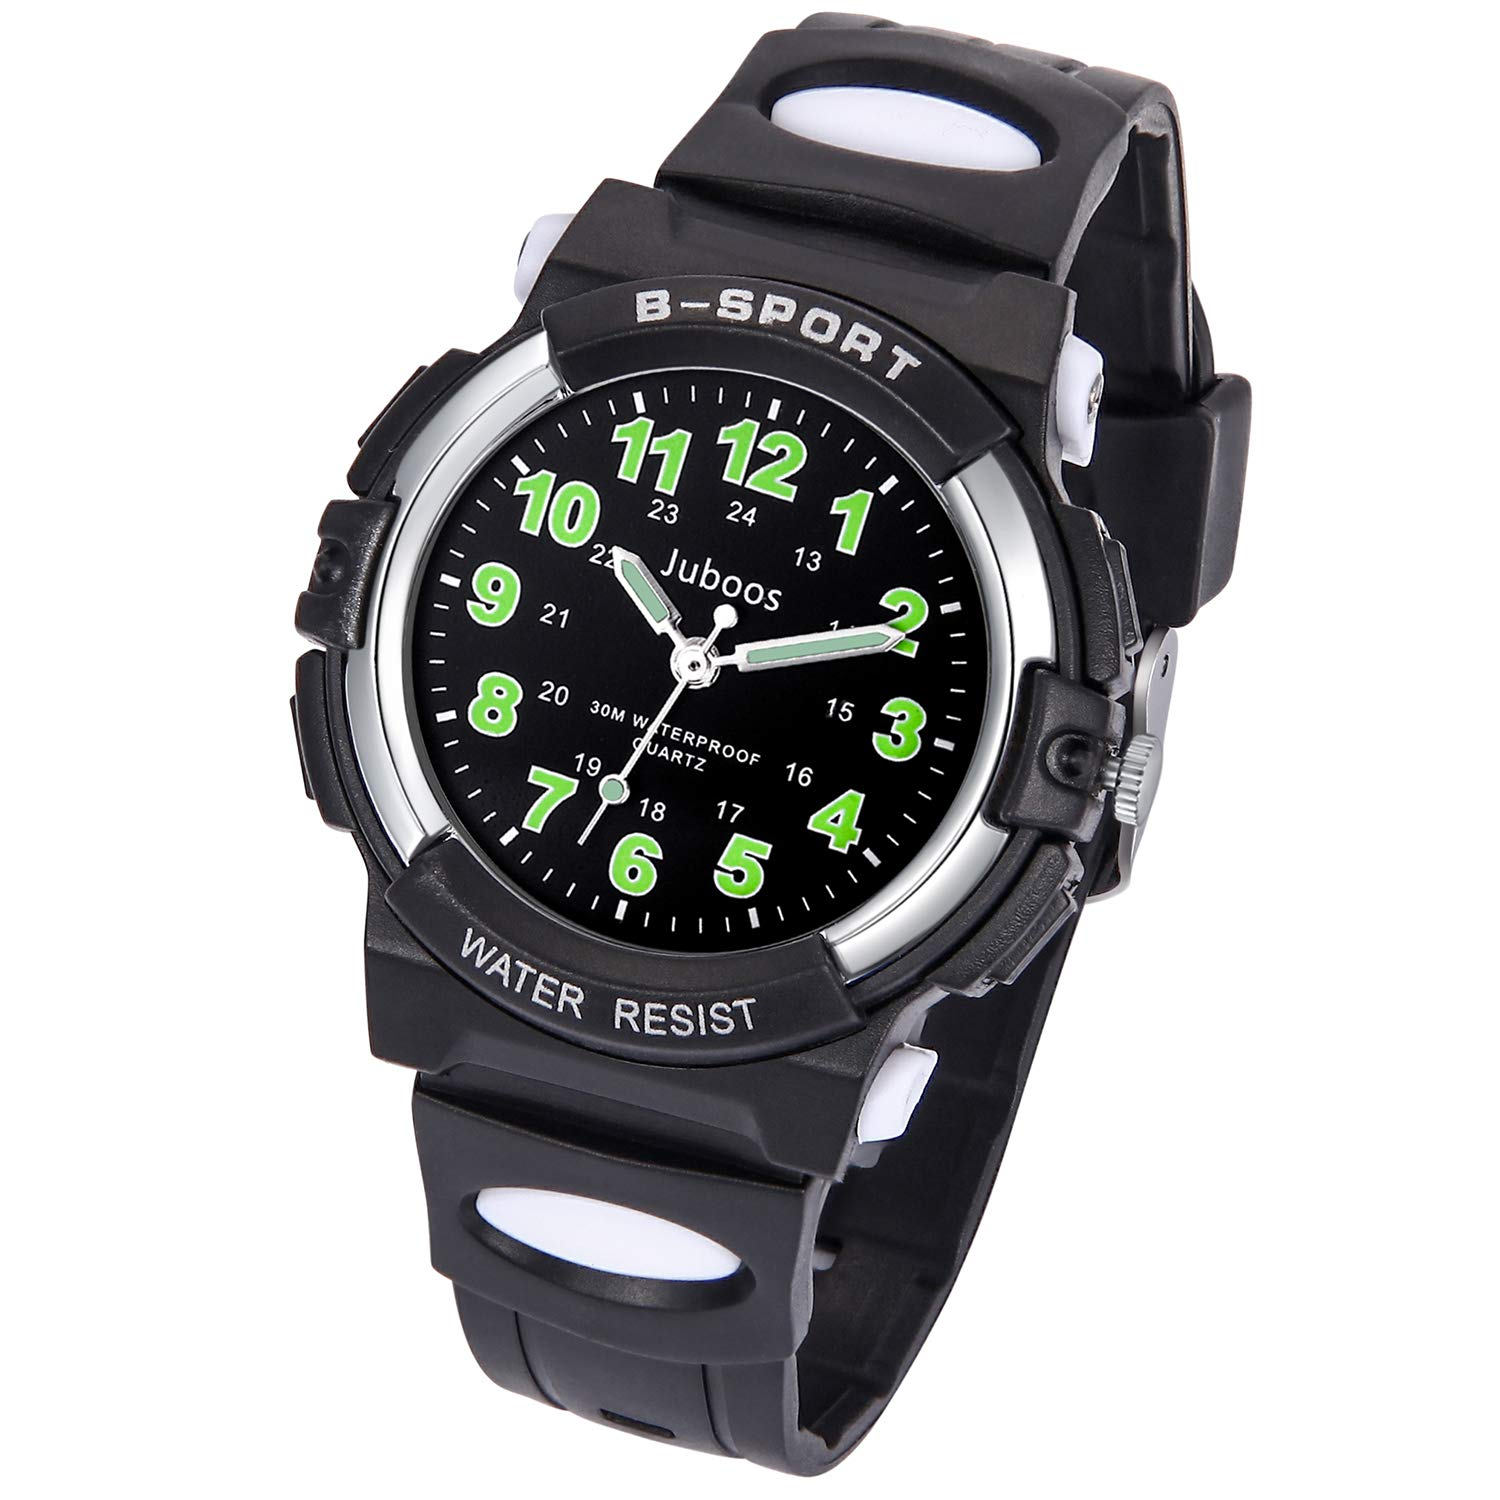 Kids Watches, Child Quartz Wristwatch Easy to Read Watches for Boys Girls Kids Waterproof Time Teach Watches Rubber Band…